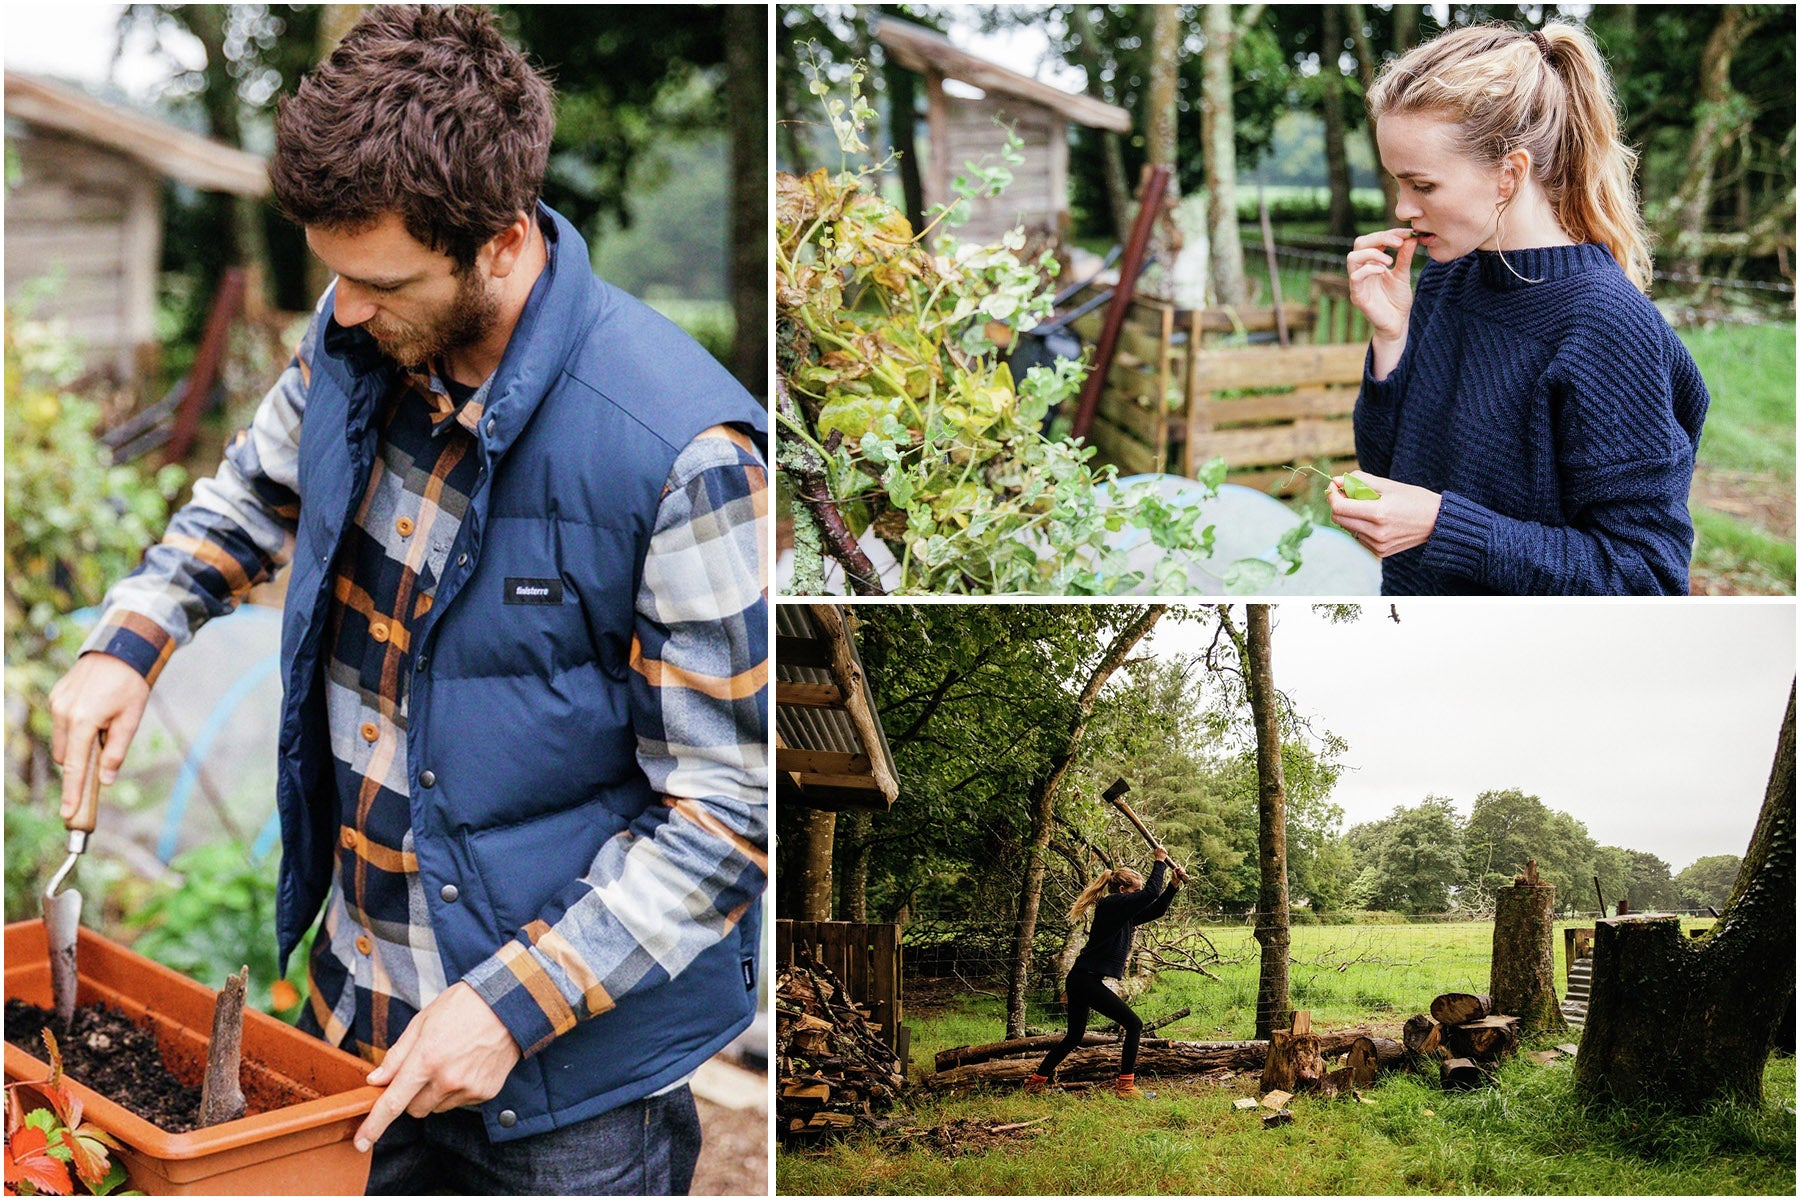 Sam and Meg Glazebrook wearing Finisterre clothing and working in their vegetable garden